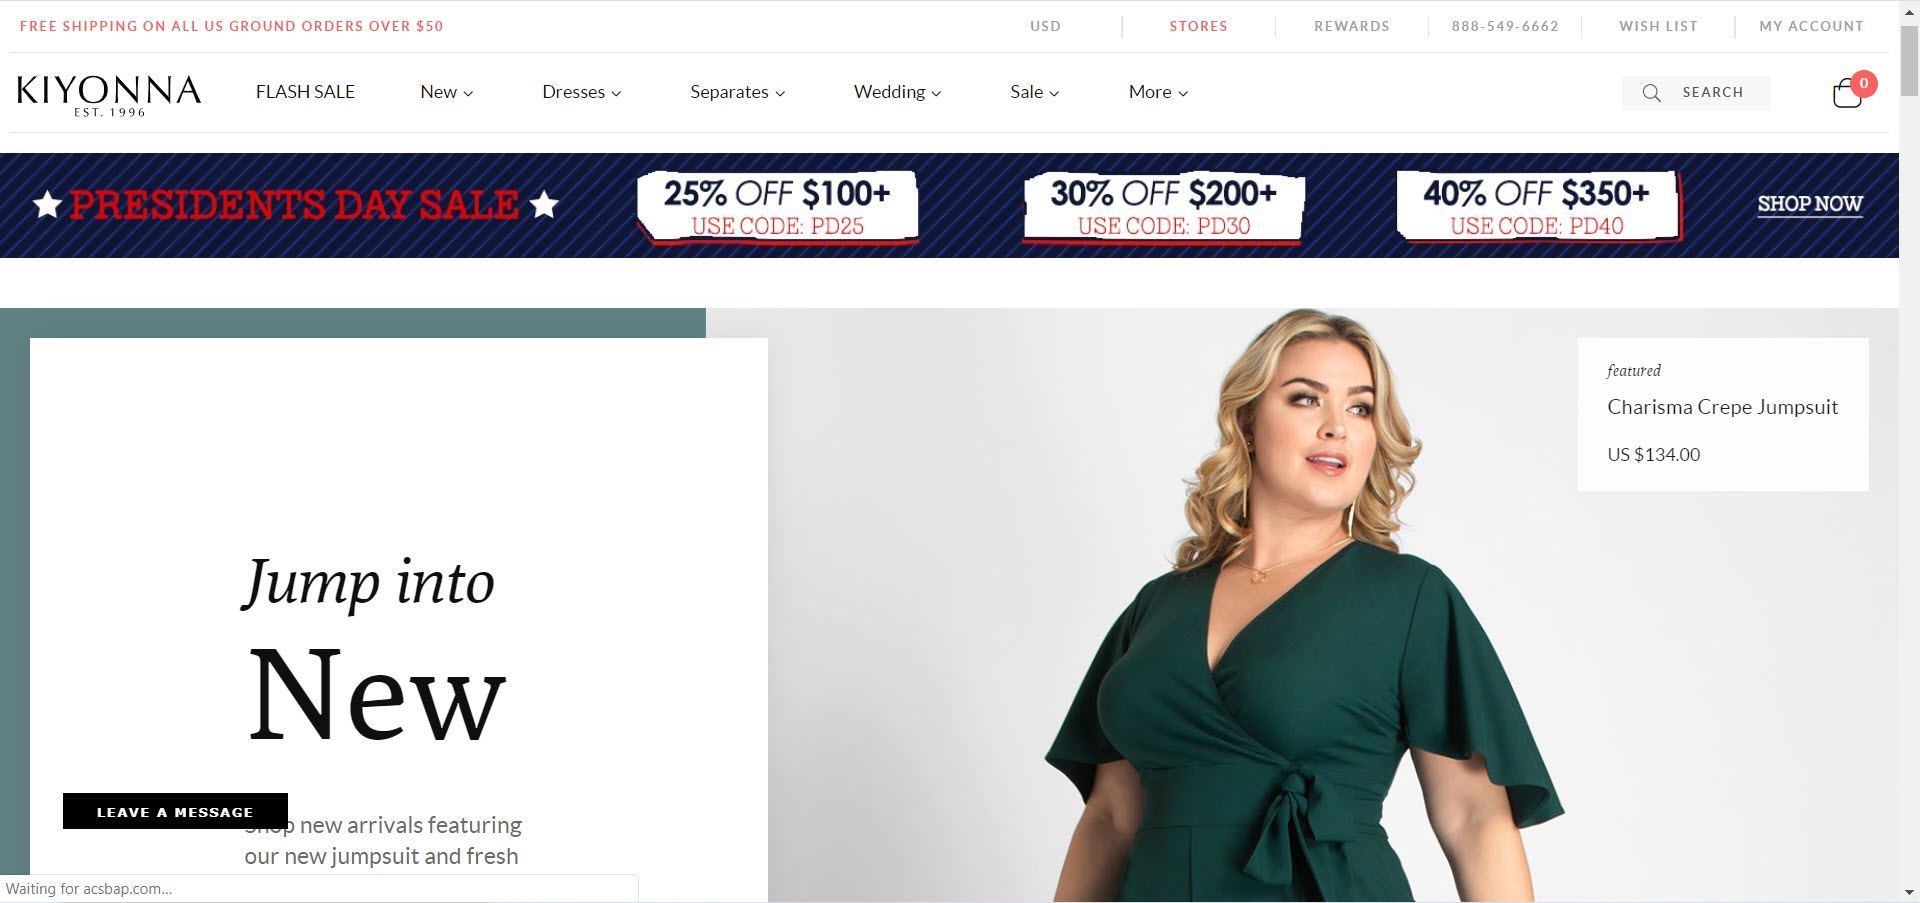 Women's Fashion Affiliate Programs - Kiyonna